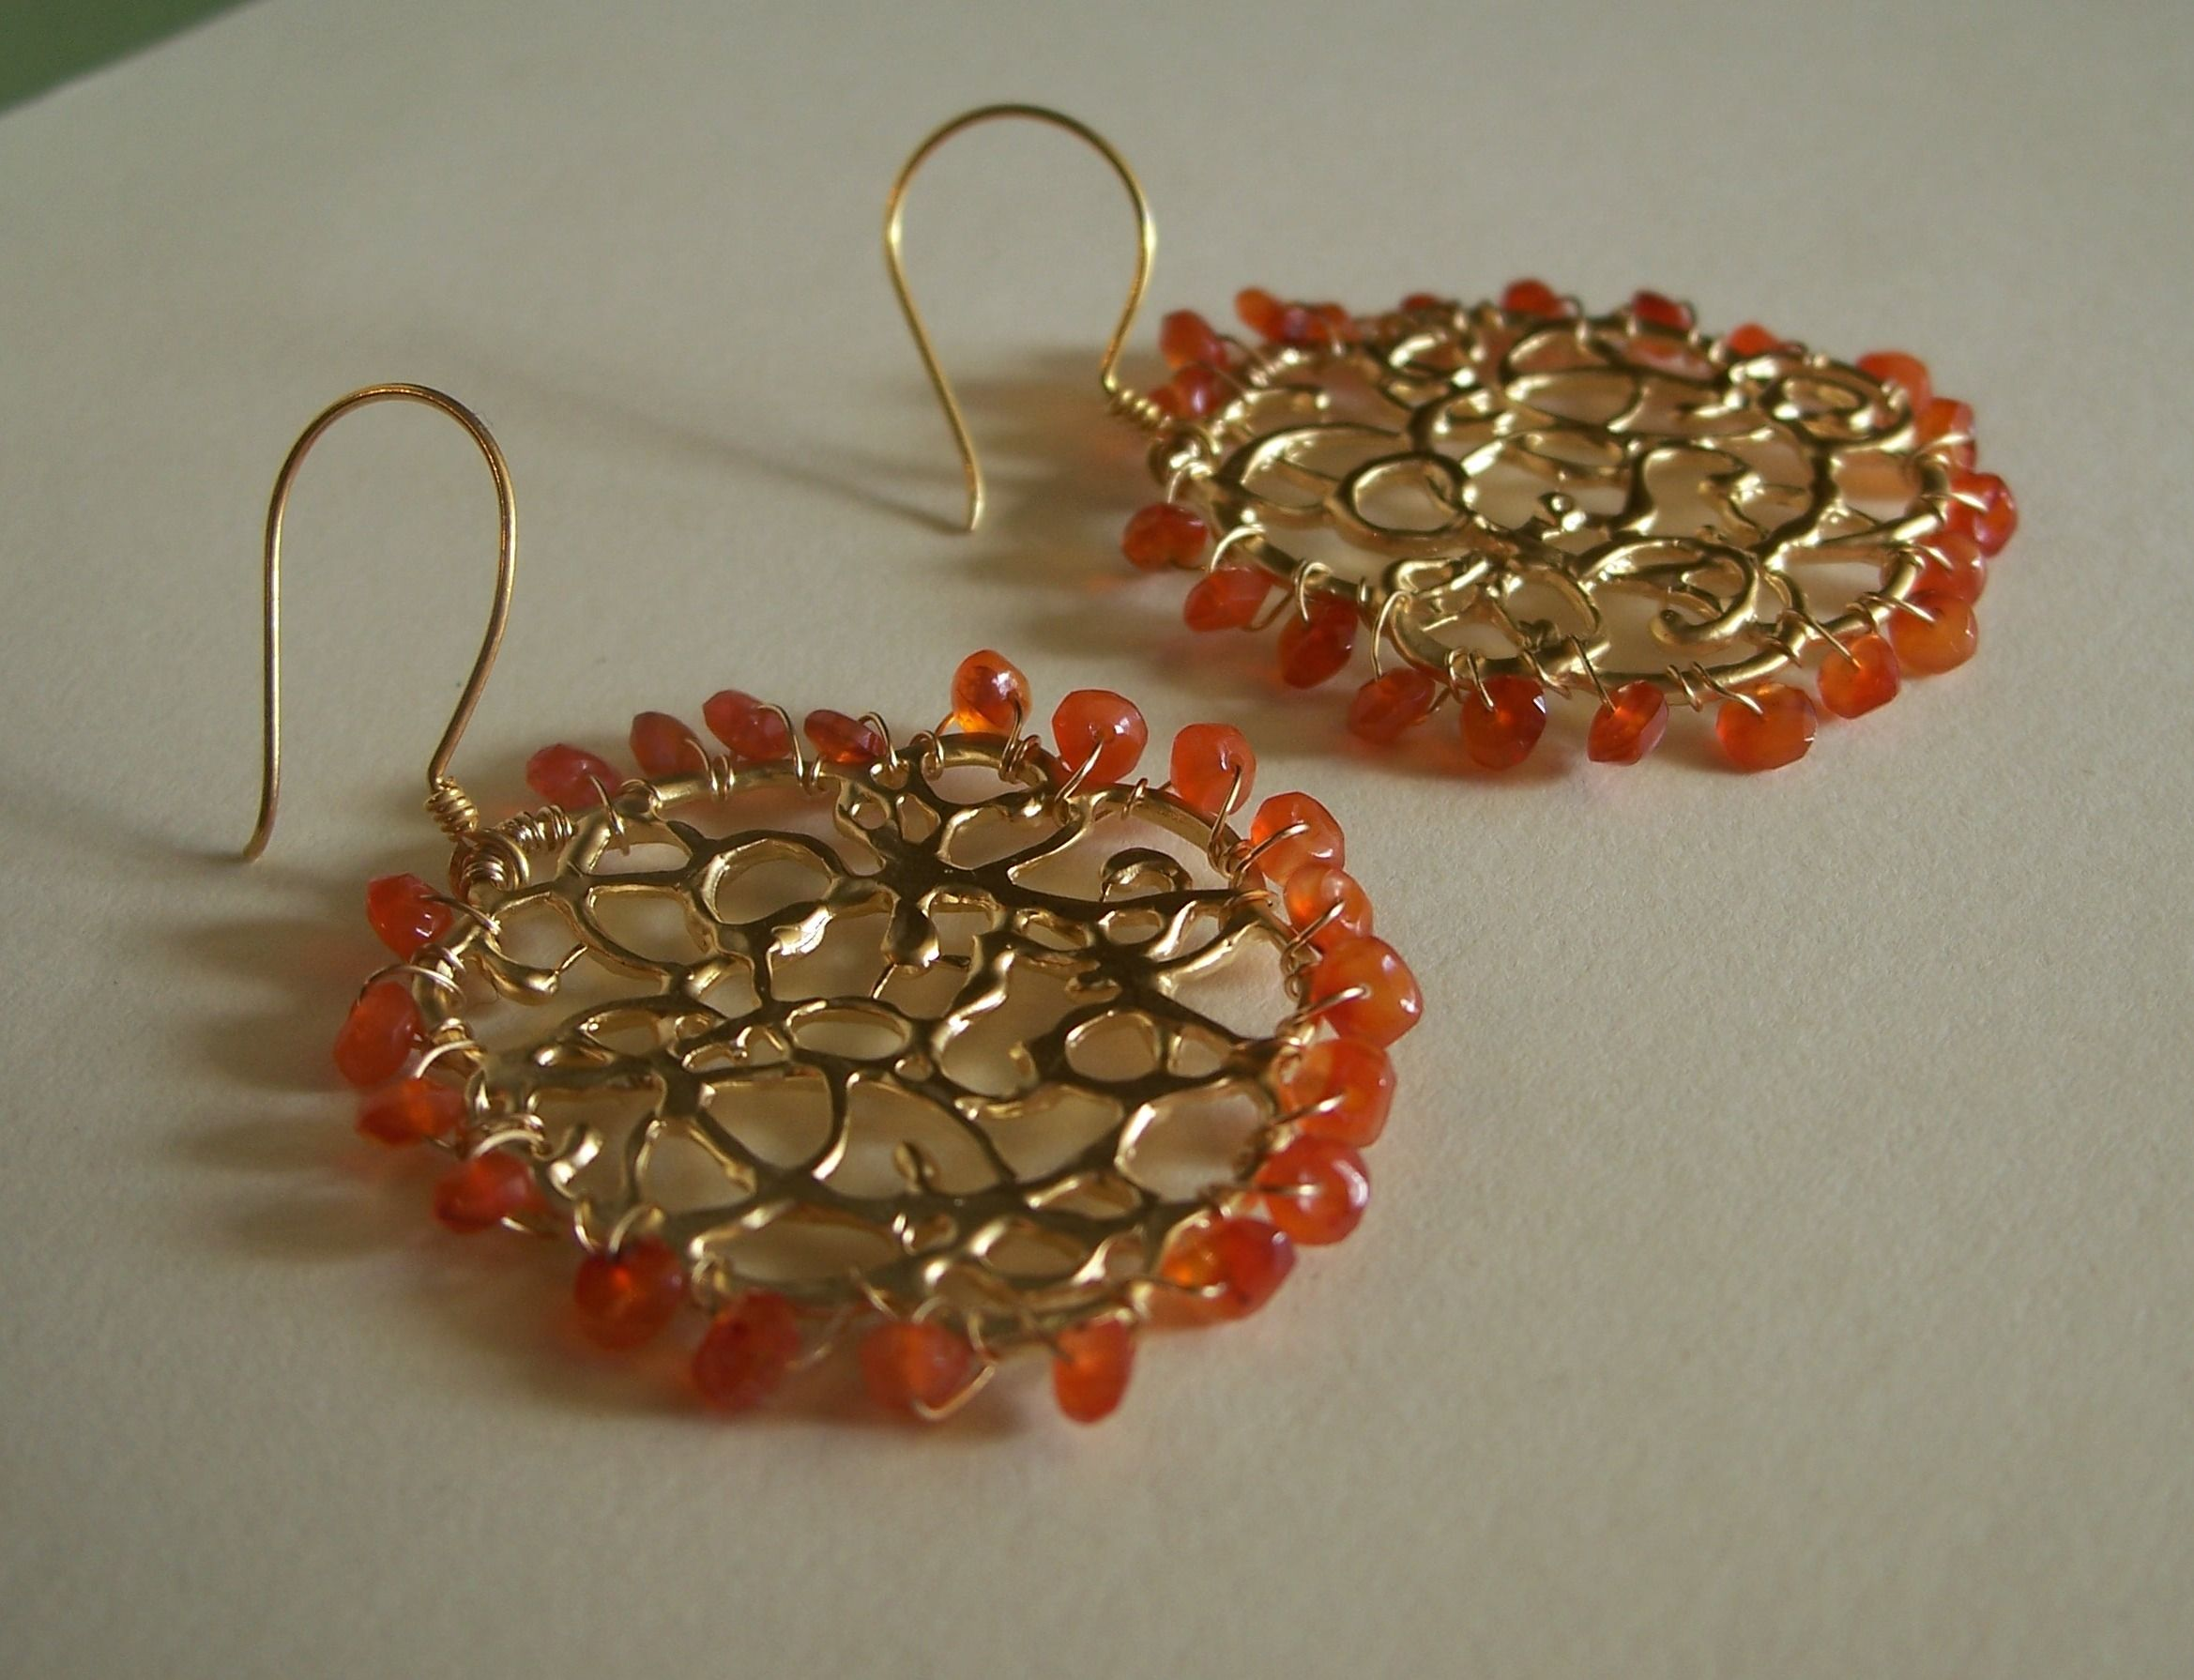 Gold disc earrings with carnelians! Made with love! These are made by my friend Tiffany, she makes the most GORGEOUS pieces! Check her out at Pixie Handmade Jewlery on Etsy!